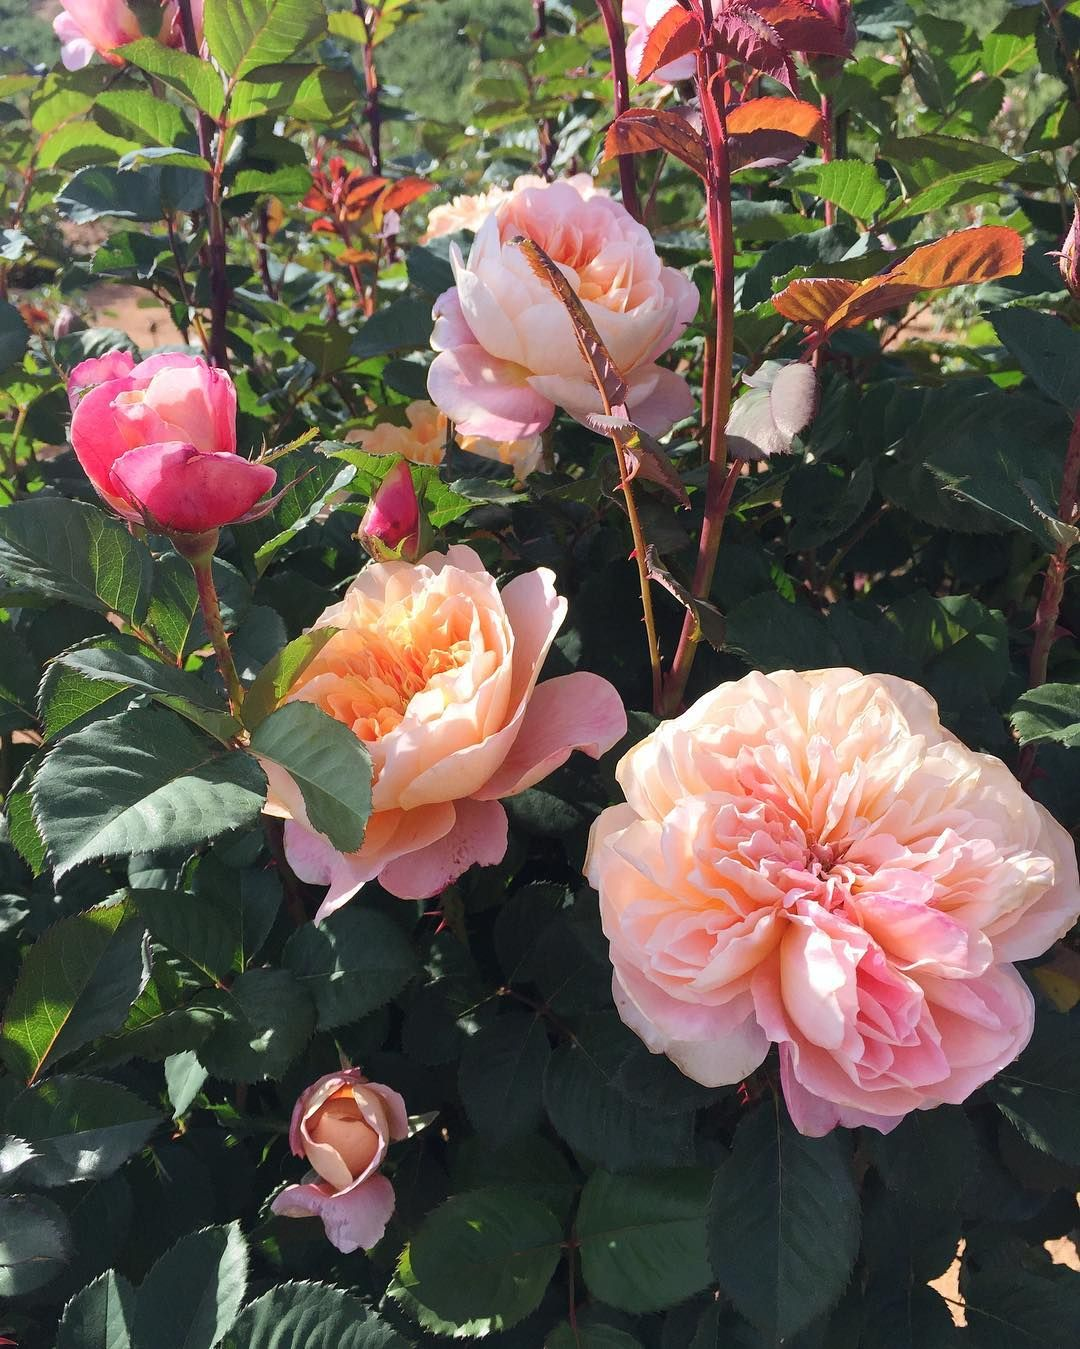 Nancy Teasley Ella Rose Farm On Instagram The Bushes I Bought From Heirloom Roses Have Seriously Taken Off This Year Heirloom Roses Rose Amazing Gardens